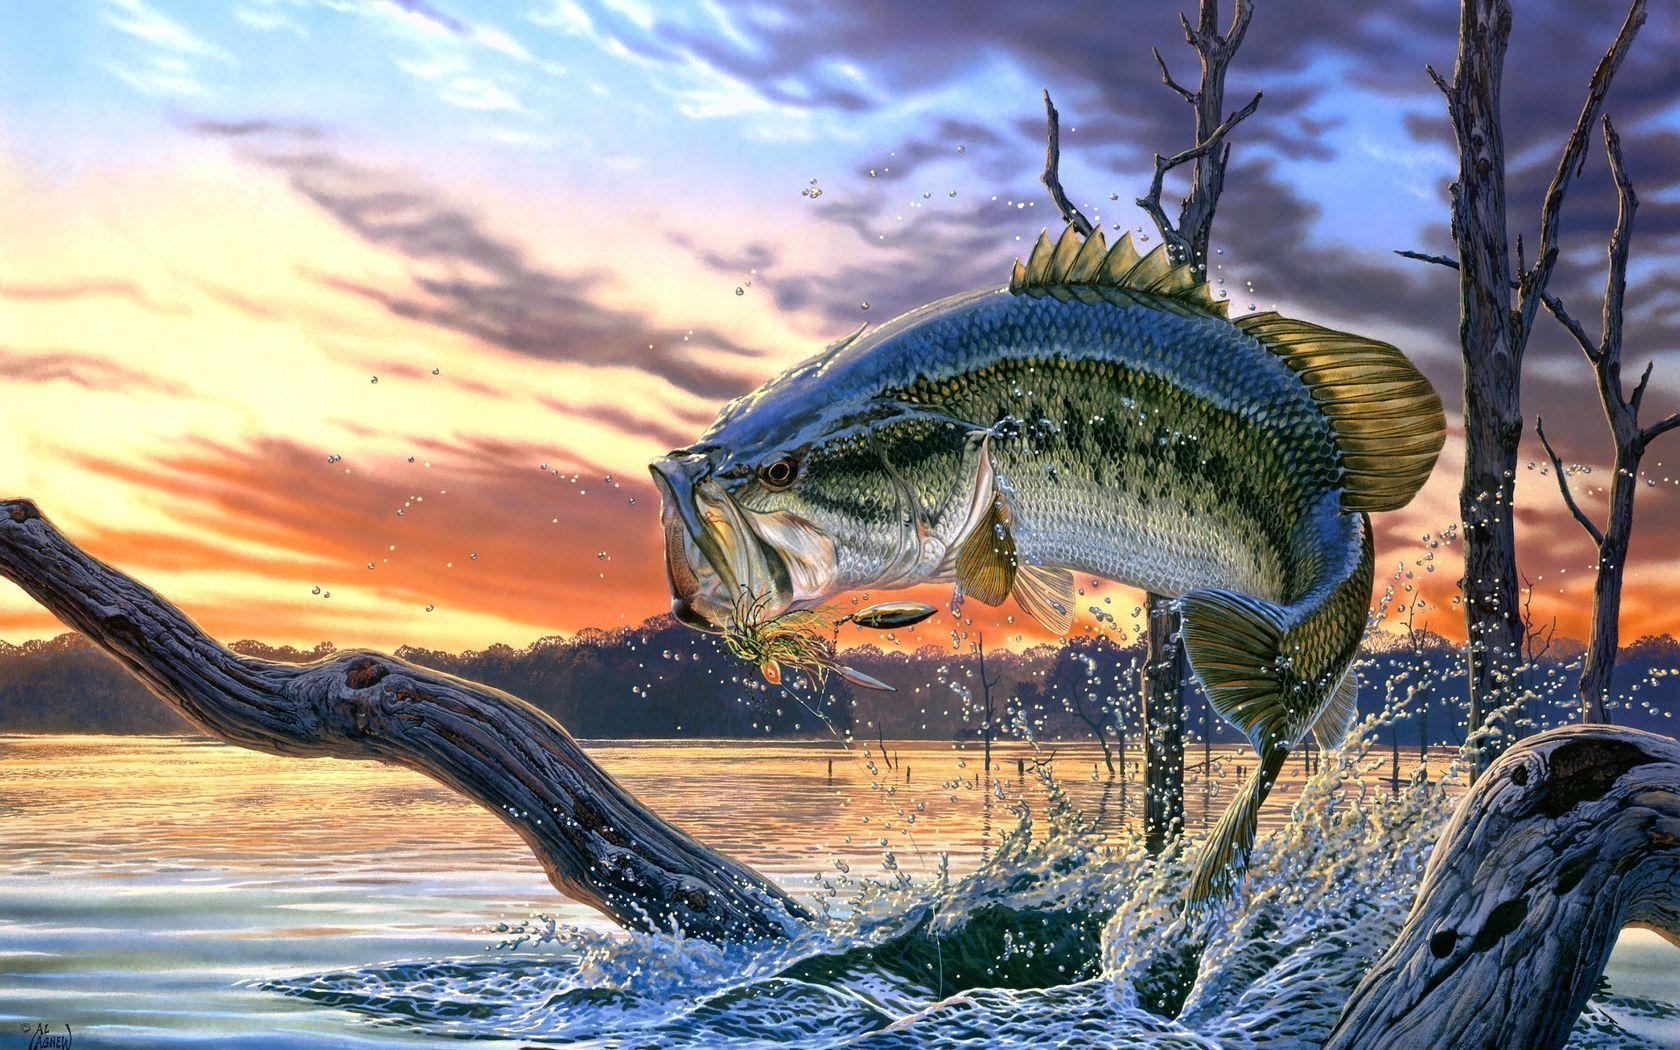 Bass Fishing Wallpaper – Style And Function Rolled Into One